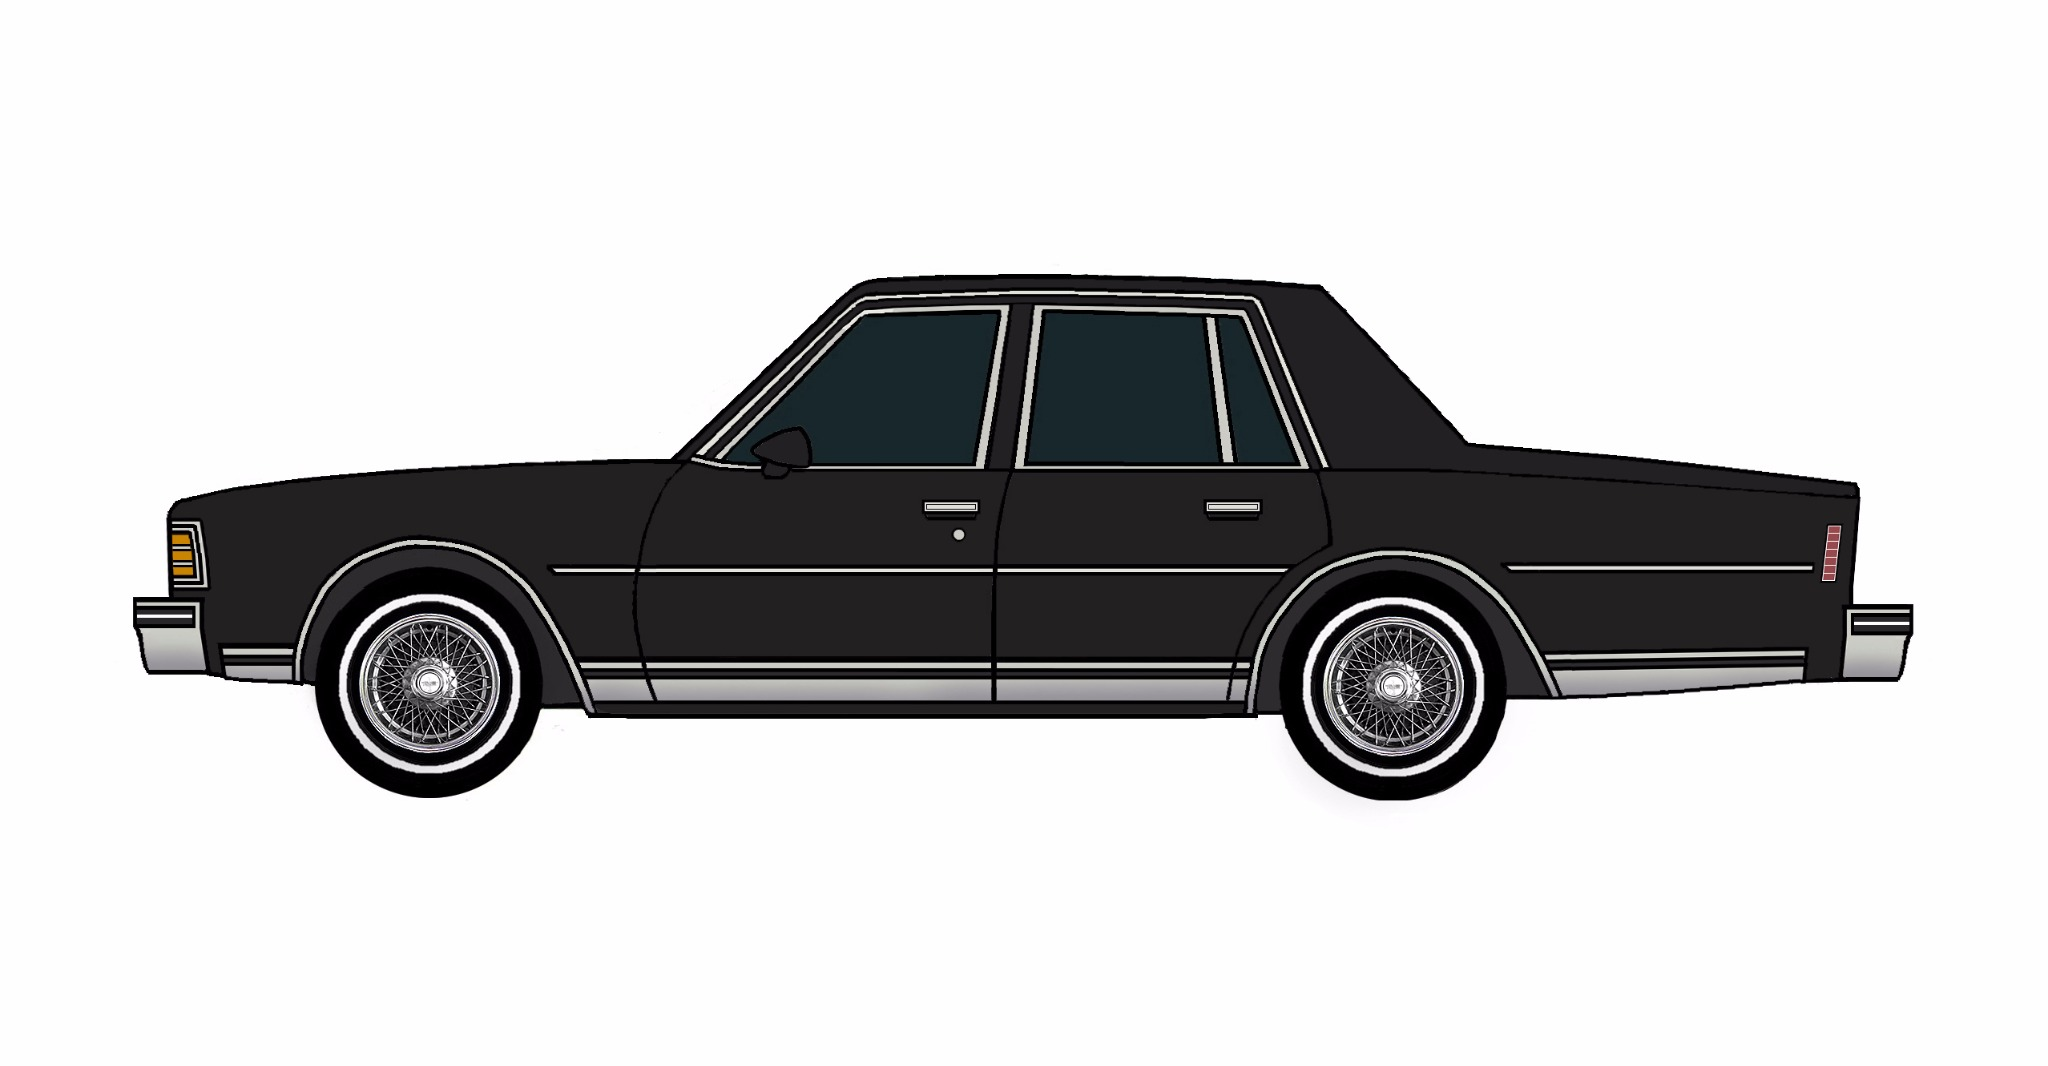 1979 Chevy Caprice BLACK